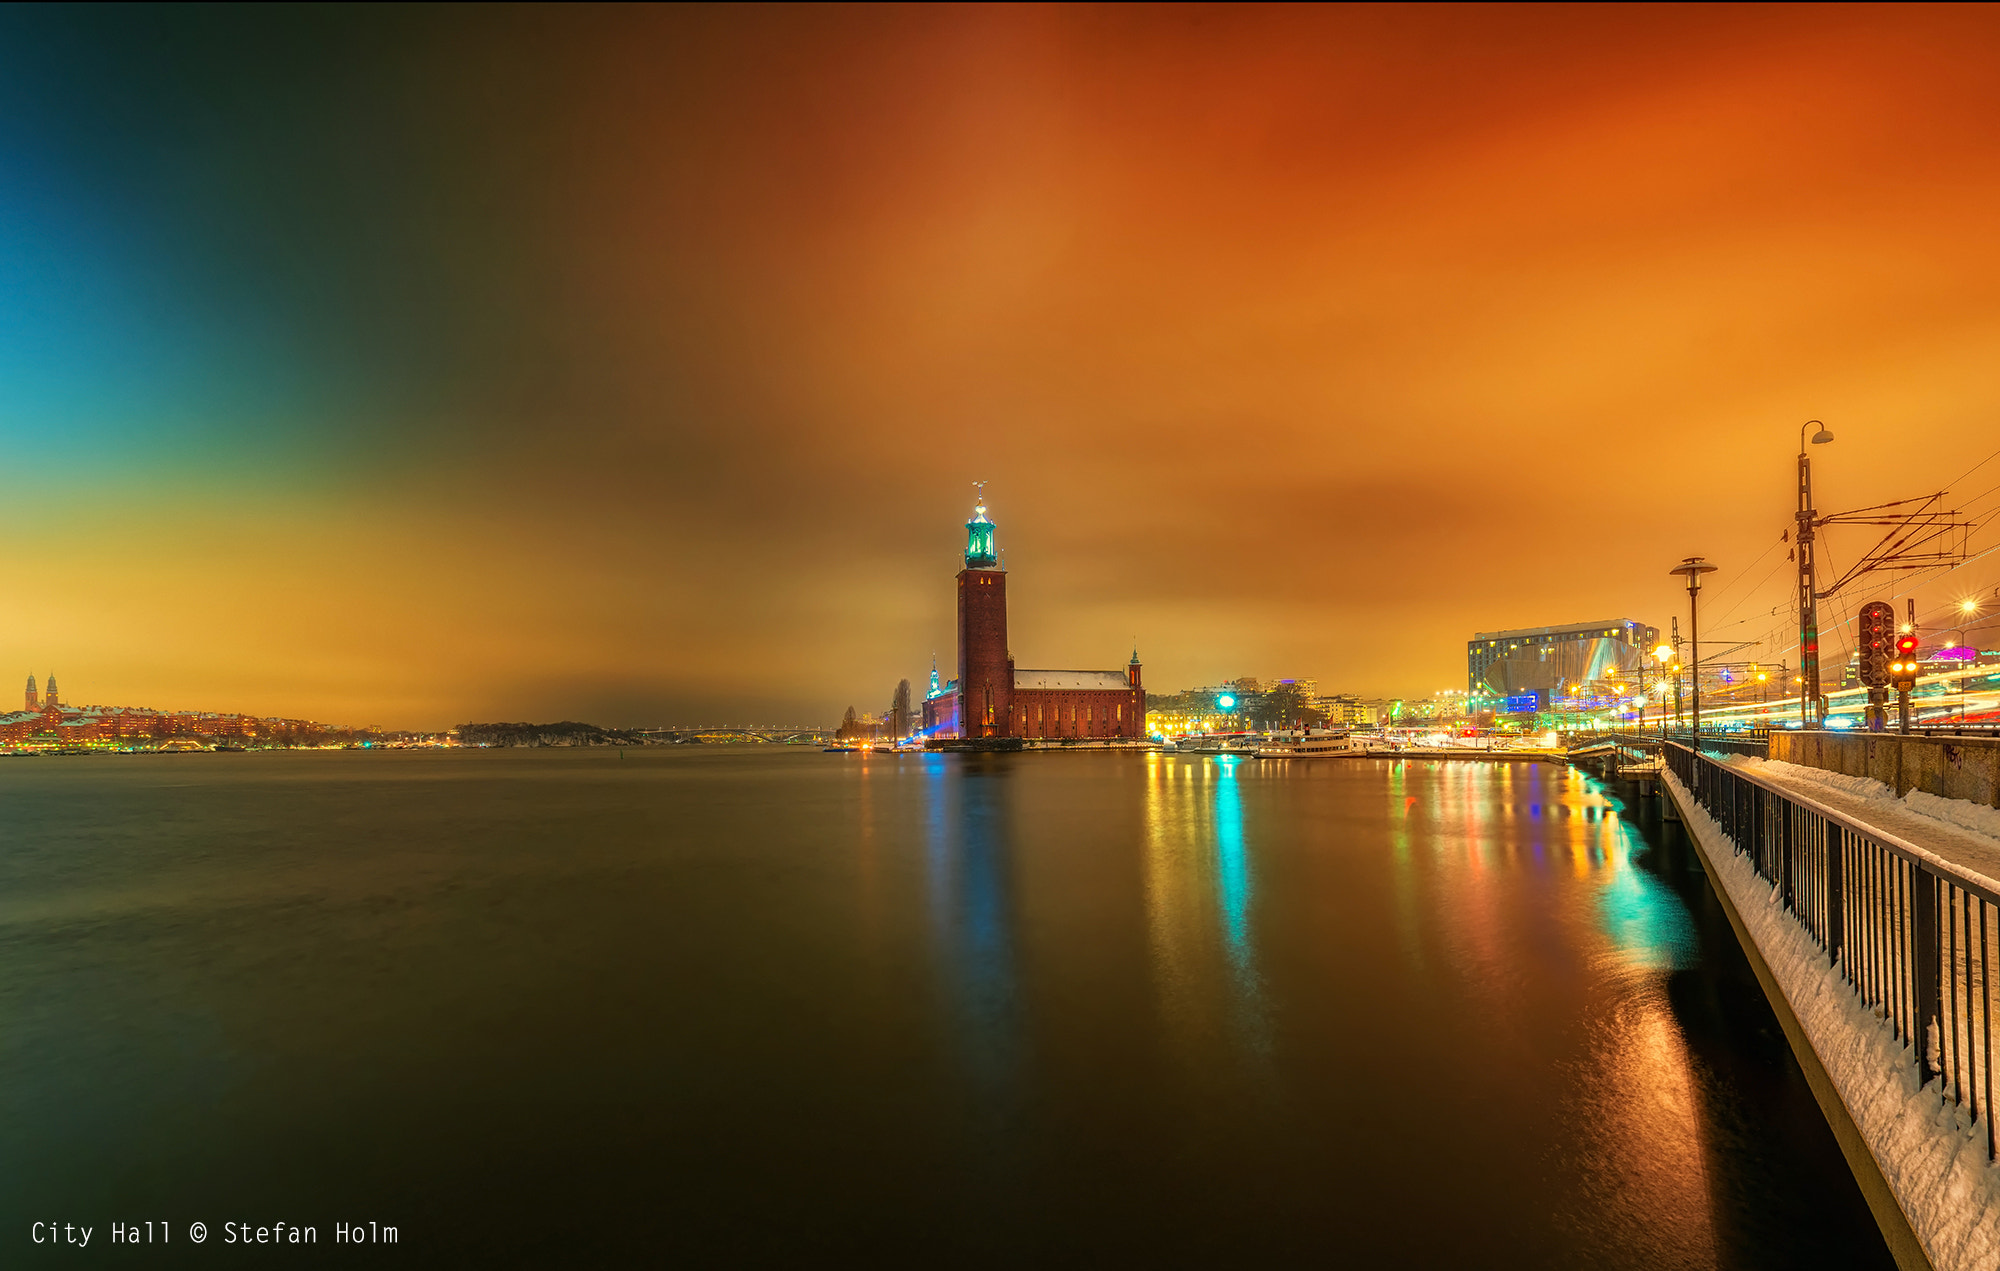 Photograph City Hall by Stefan Holm on 500px